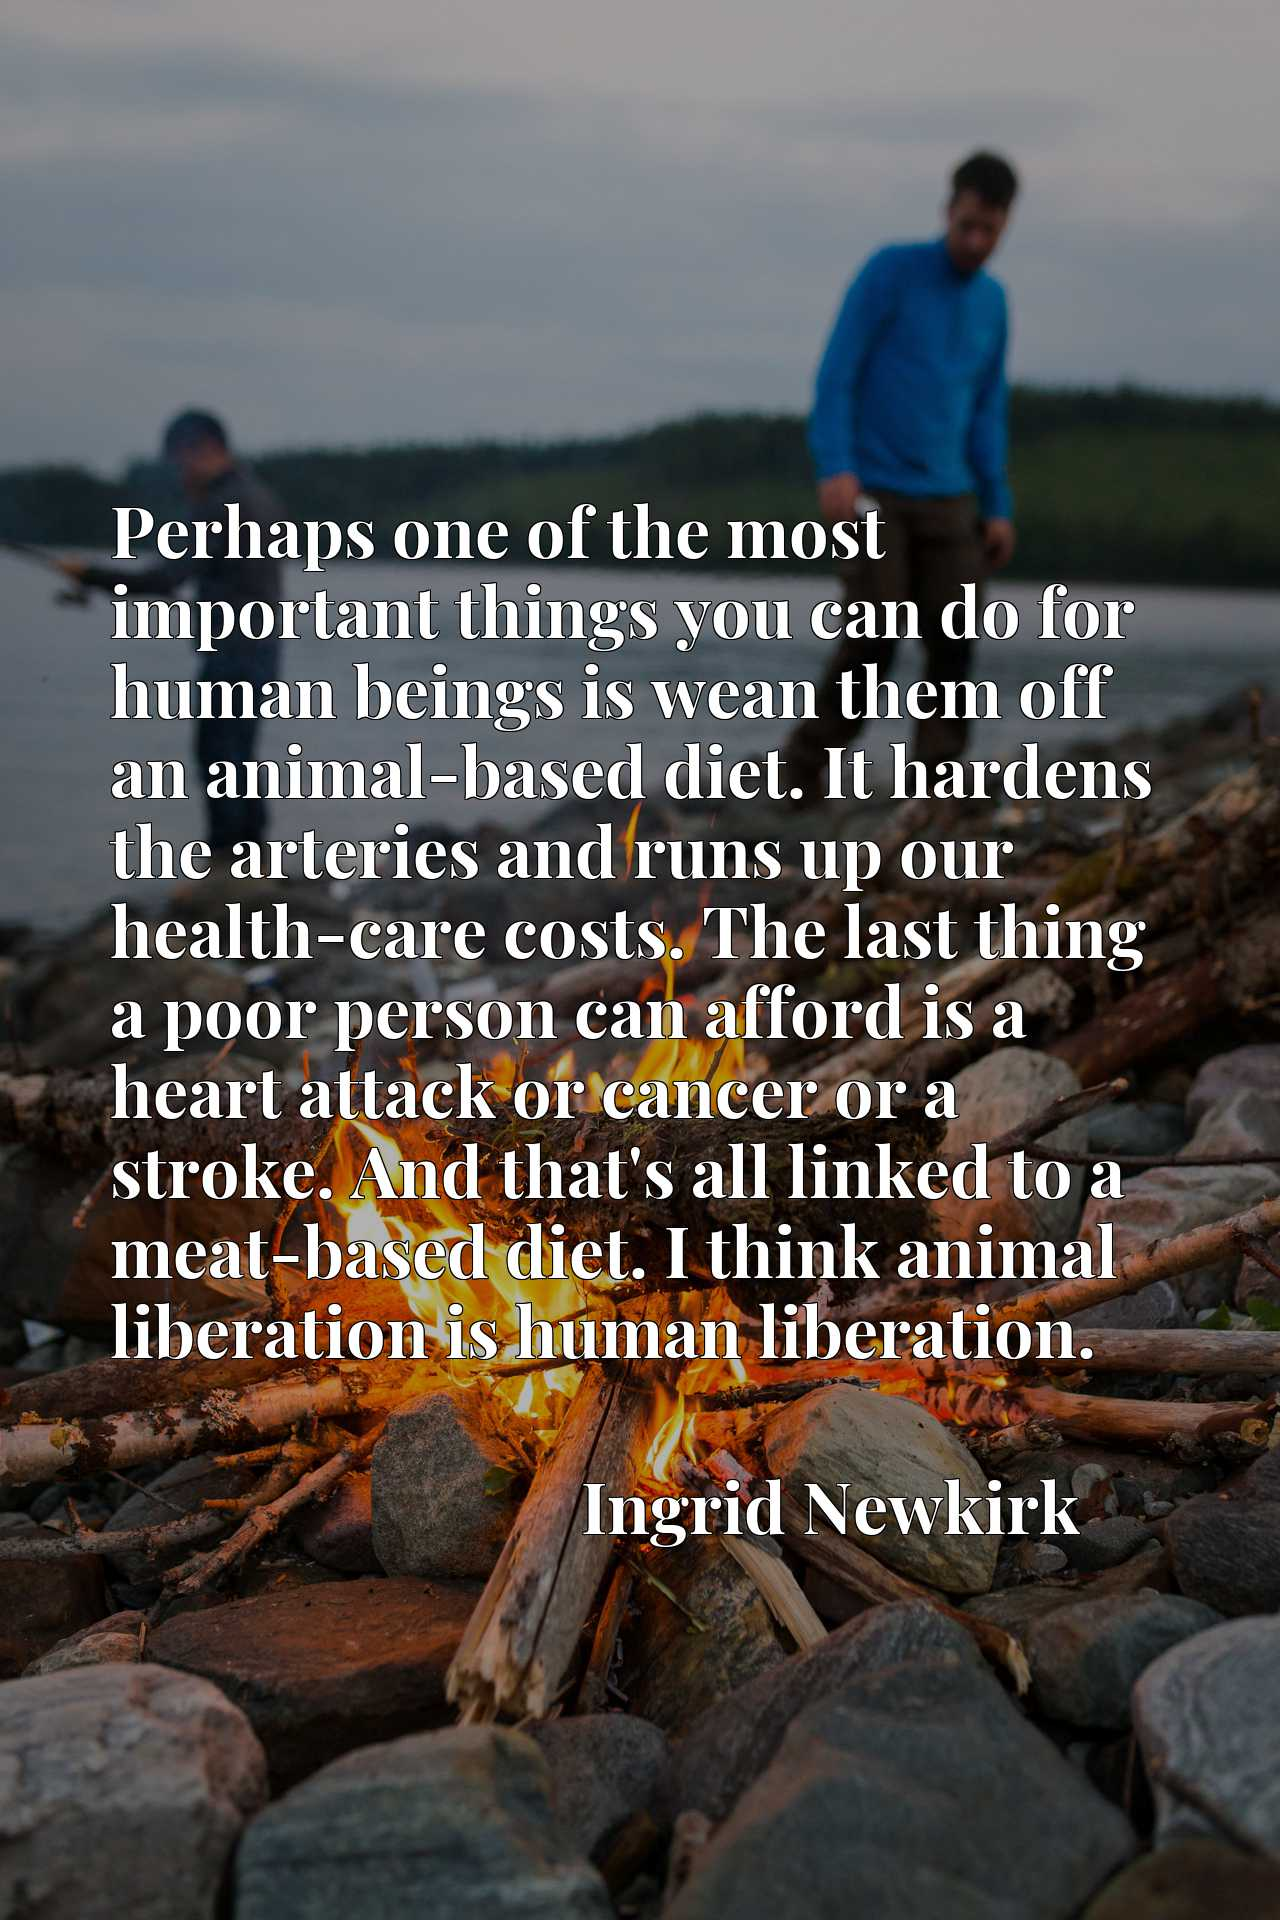 Perhaps one of the most important things you can do for human beings is wean them off an animal-based diet. It hardens the arteries and runs up our health-care costs. The last thing a poor person can afford is a heart attack or cancer or a stroke. And that's all linked to a meat-based diet. I think animal liberation is human liberation.